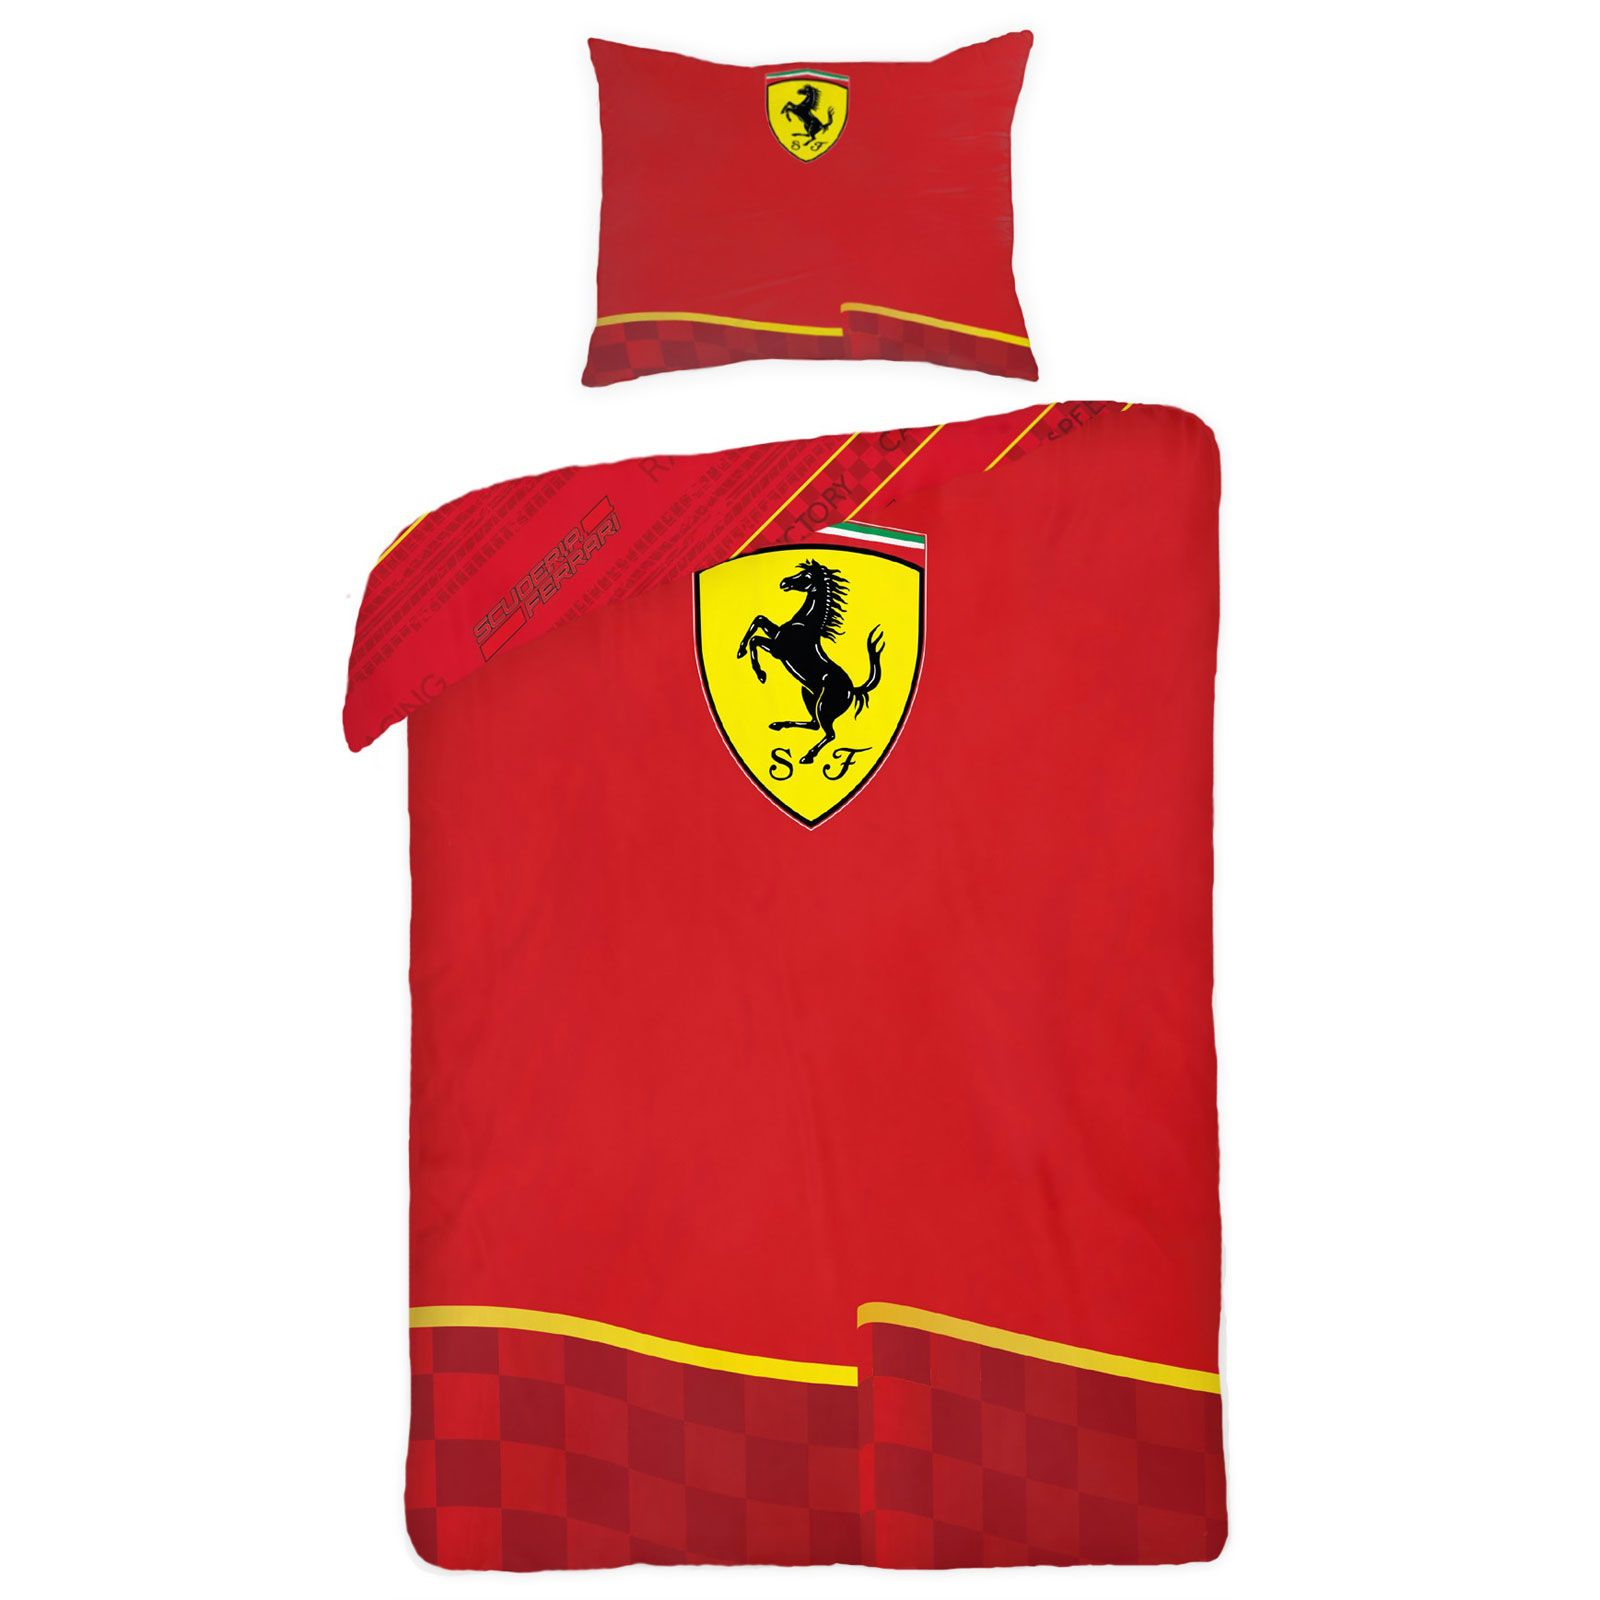 Official Ferrari Design Duvet Cover Sets Boys Bedroom